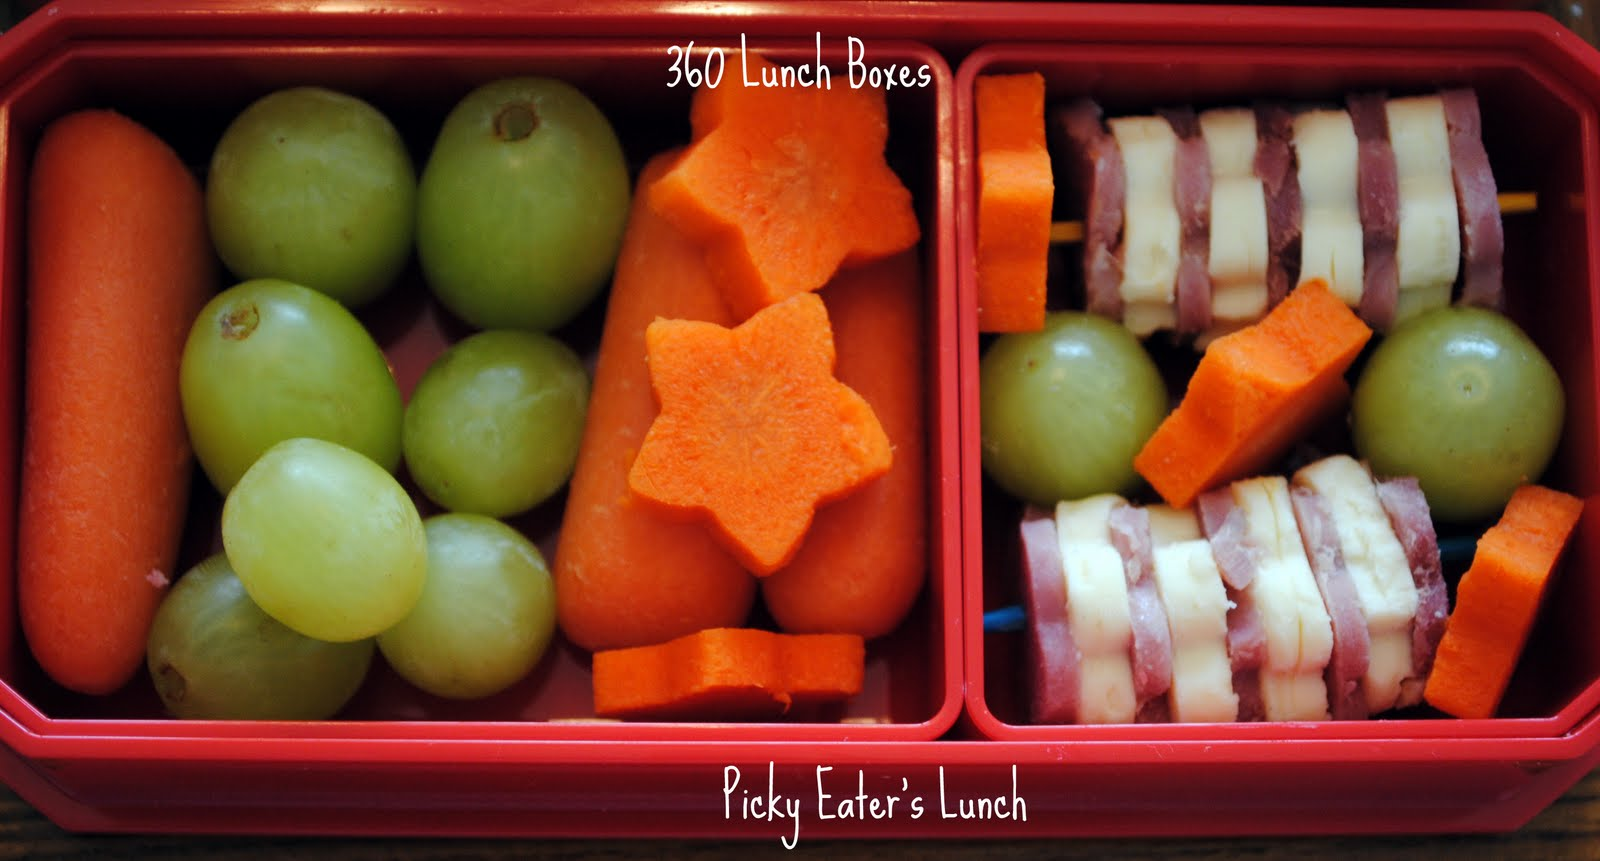 360 Lunch Boxes Lunch For Kids First Day Of School